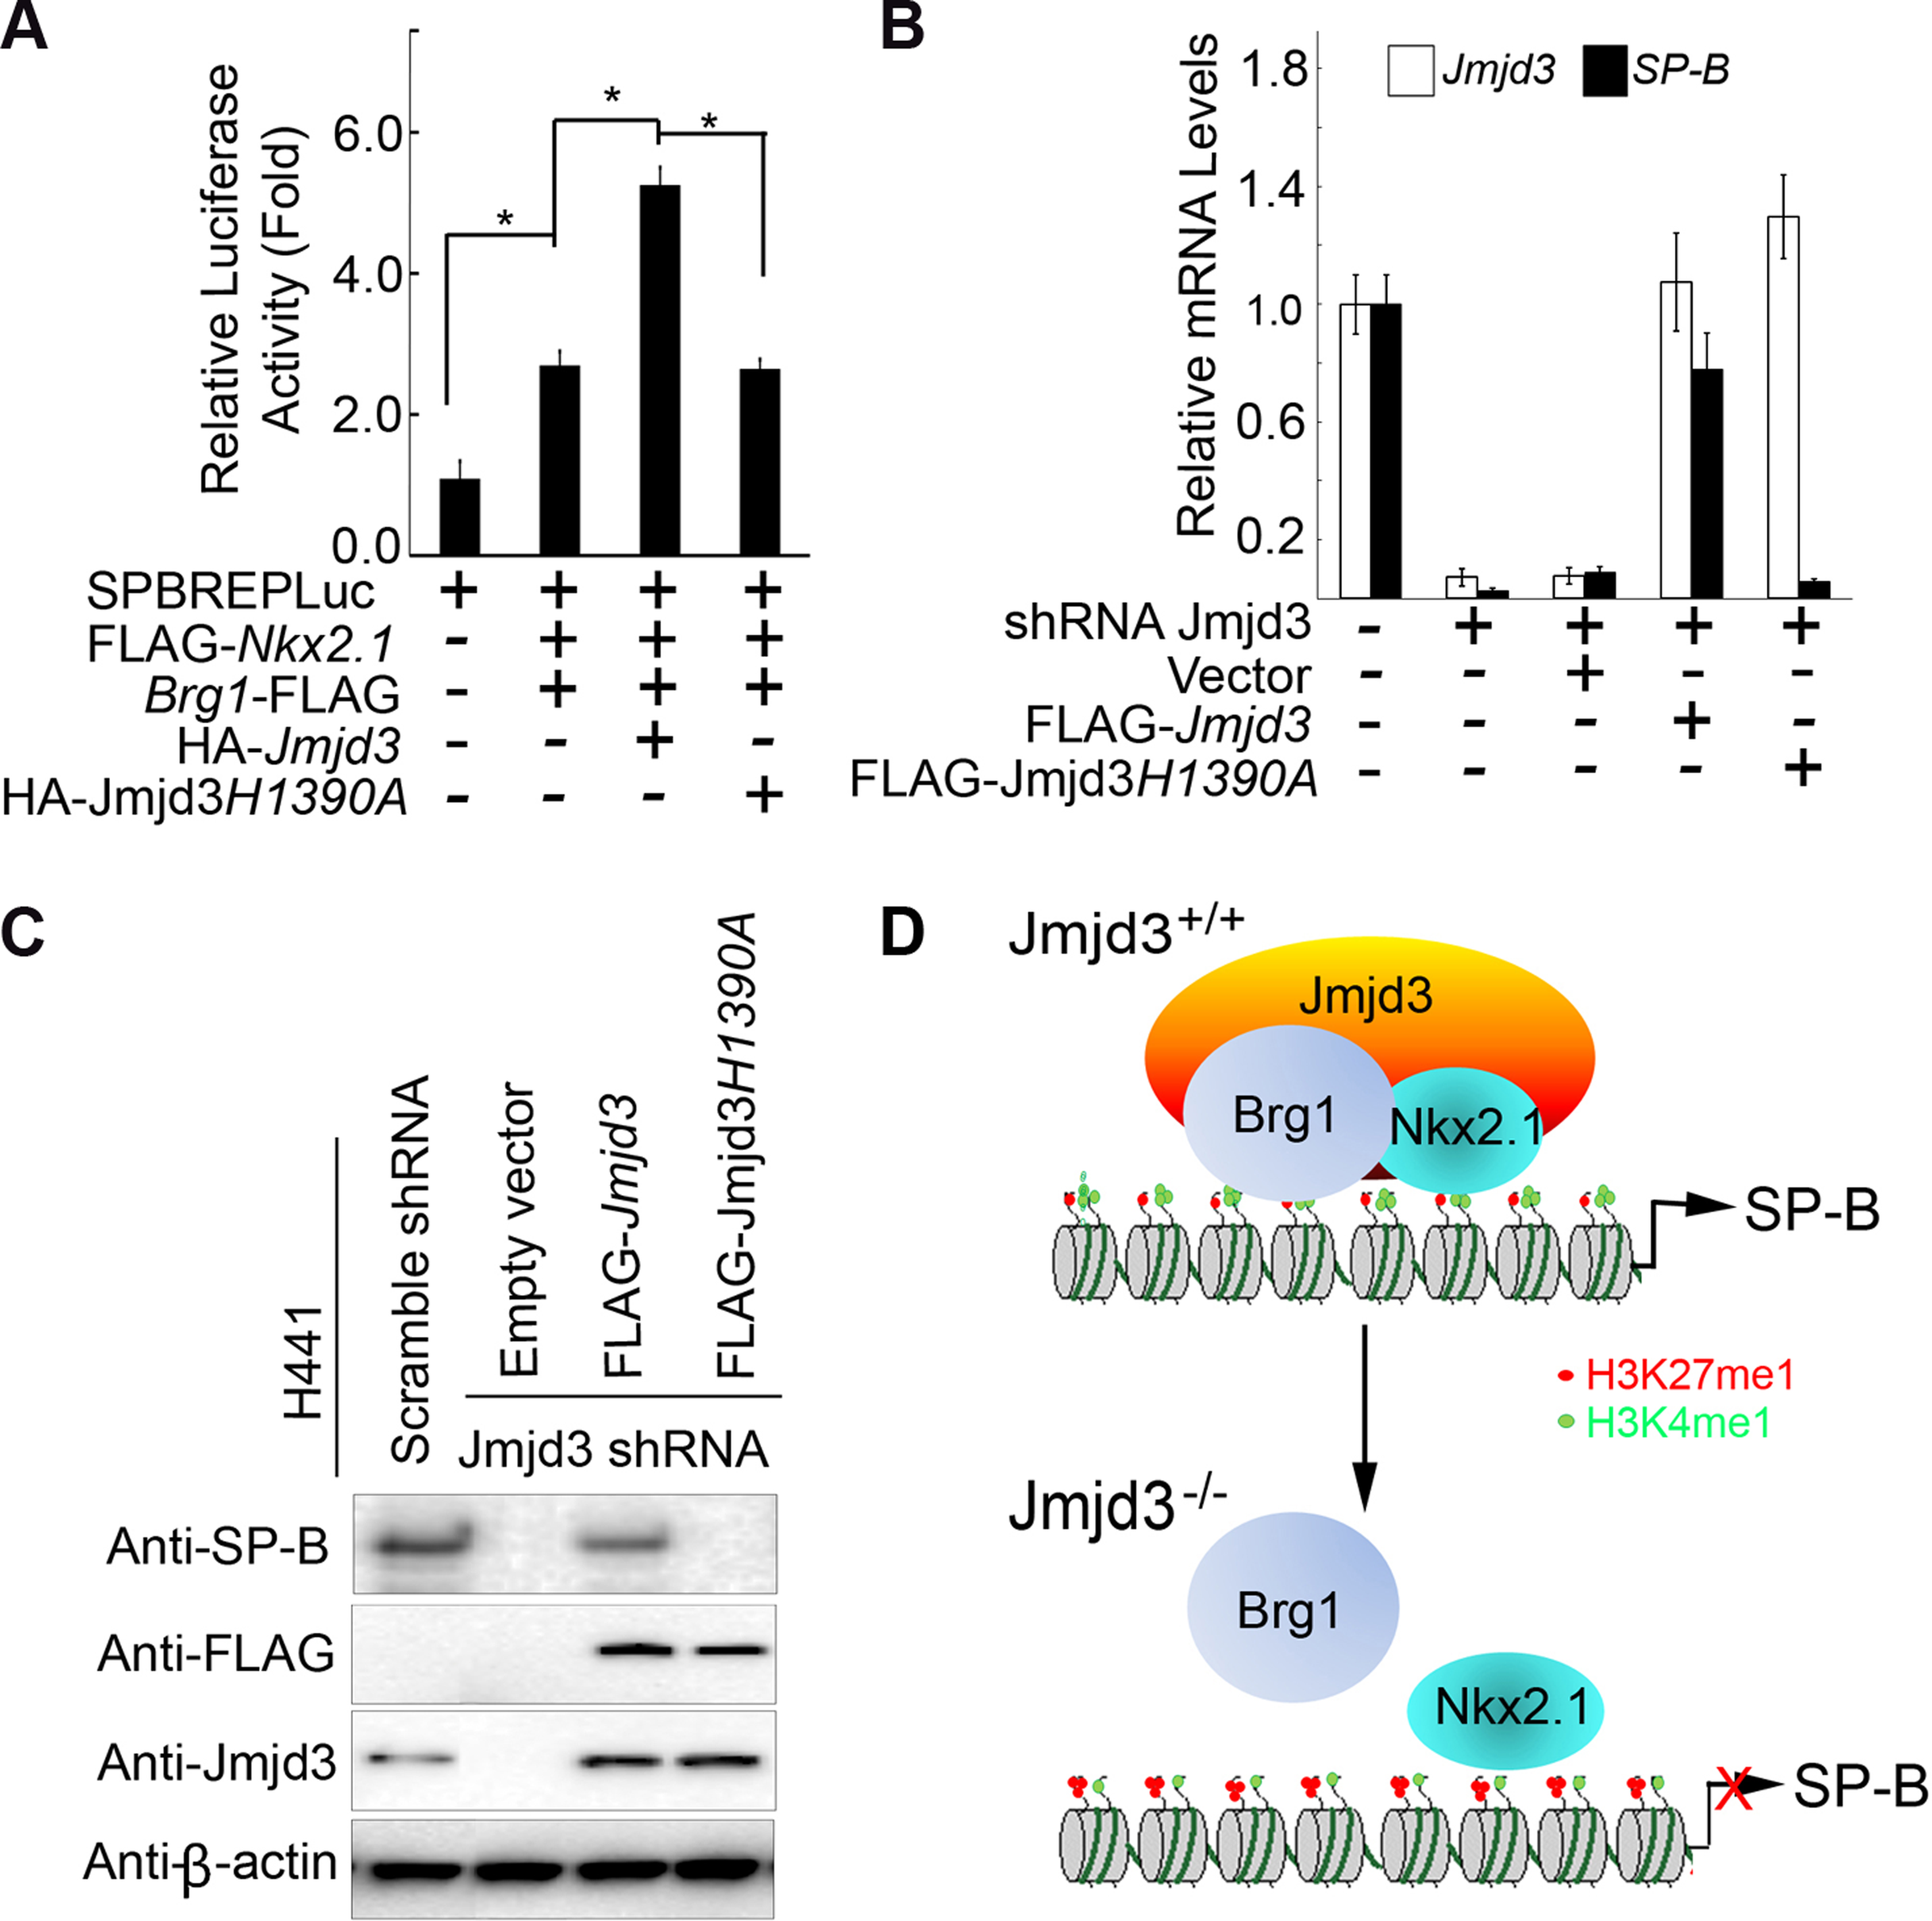 The demethylase activity of Jmjd3 is required for the regulation of <i>SP-B</i> expression.